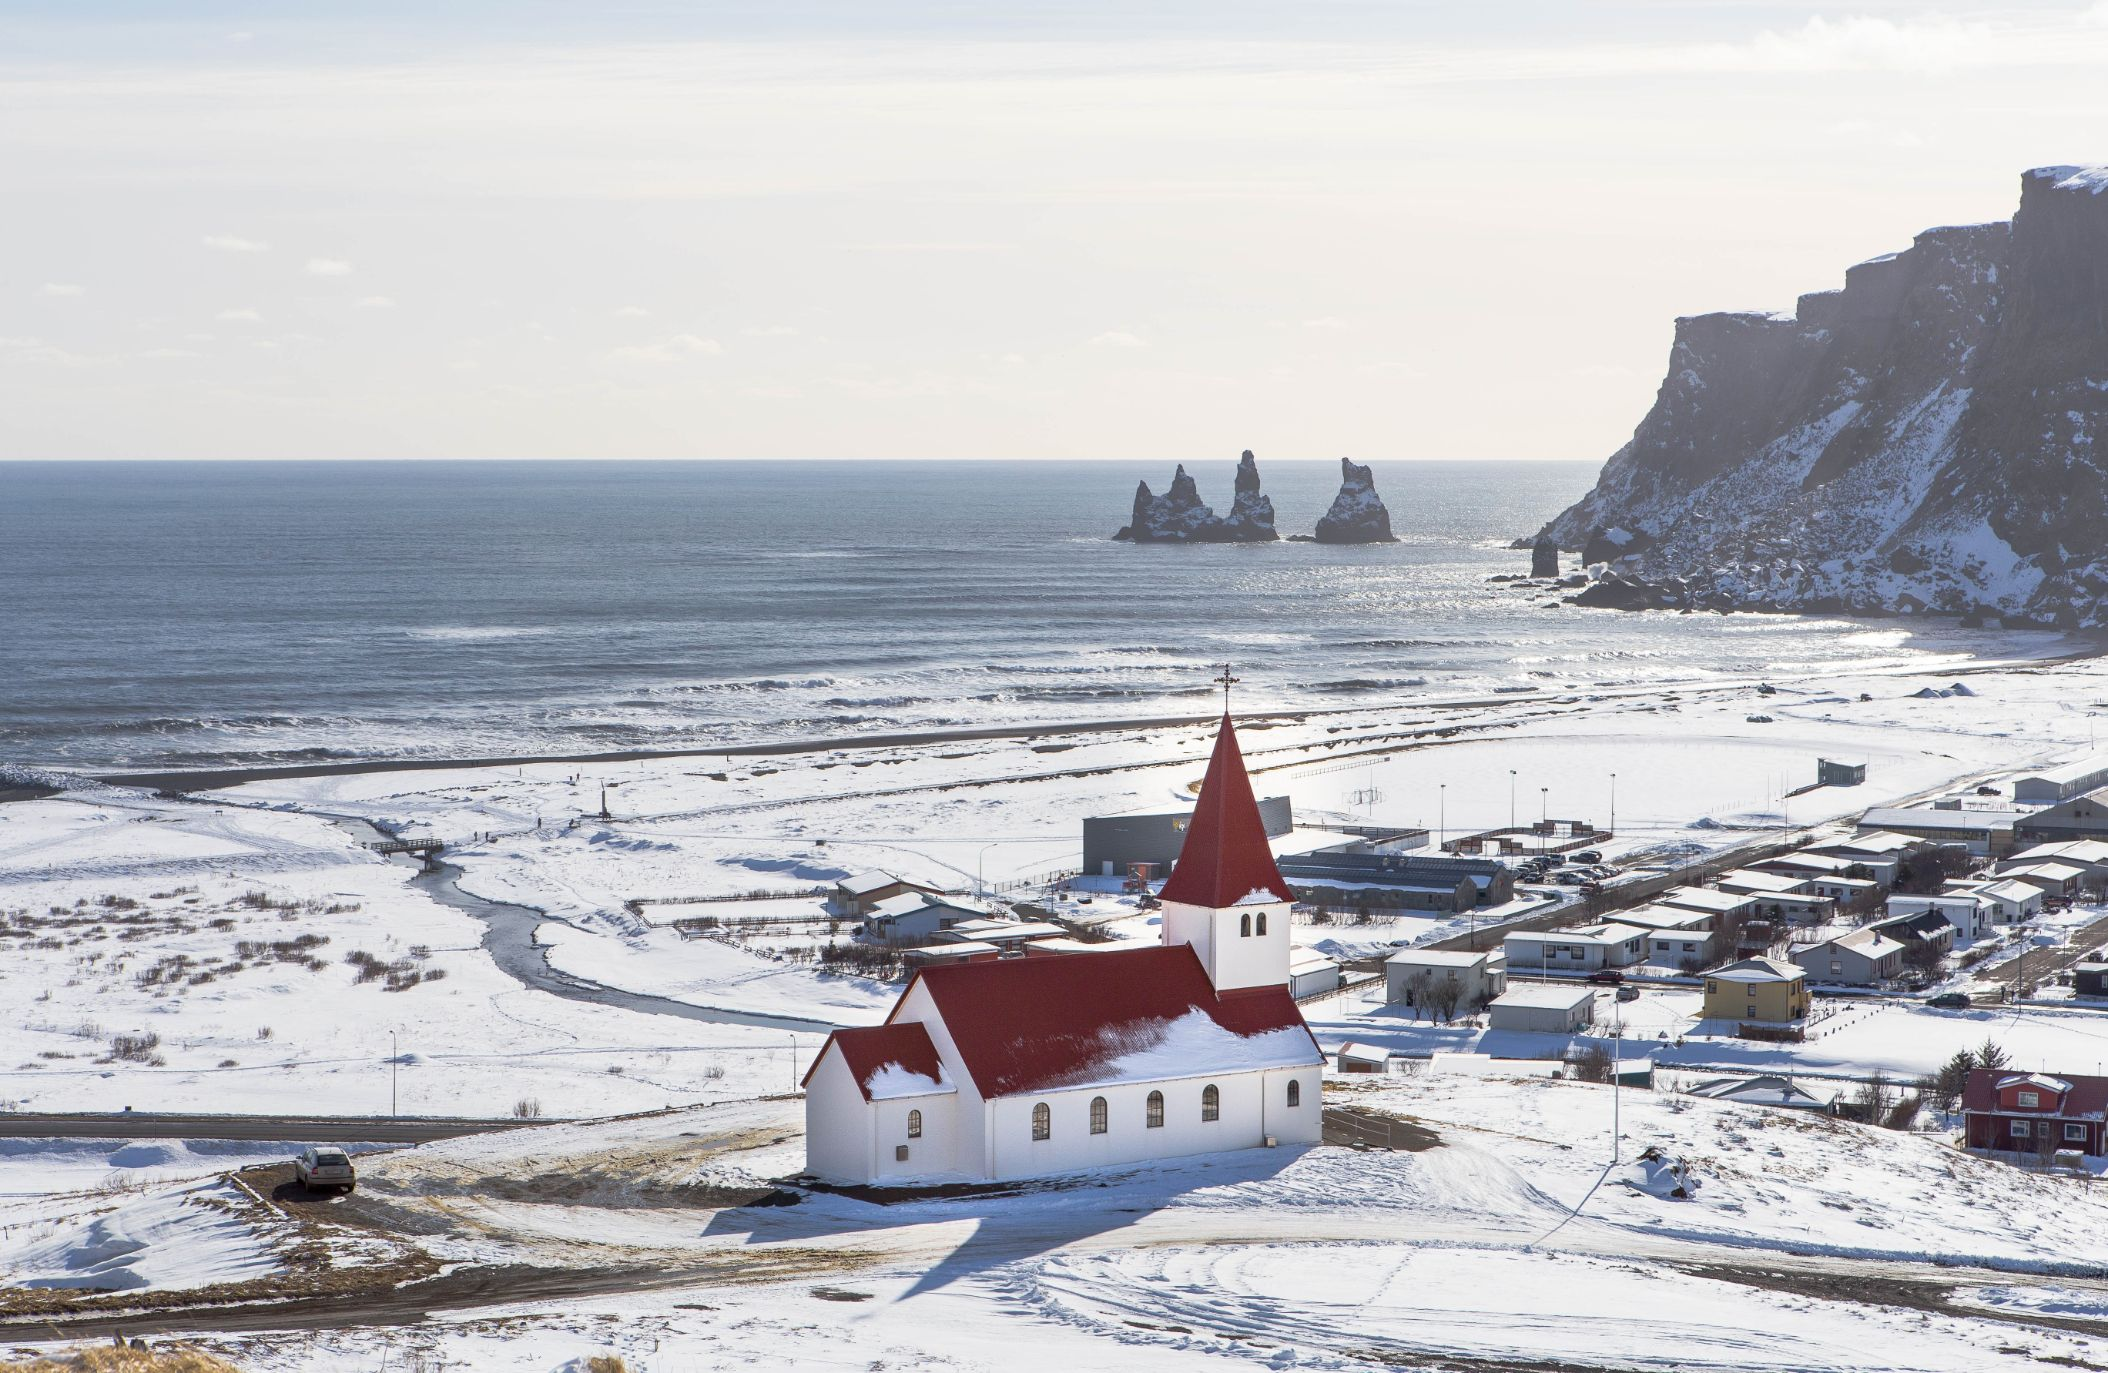 Aerial view of Vik Iceland featuring traditional Icelandic church and town of Vik with ocean in the background -  stop in 24 hour Iceland itinerary